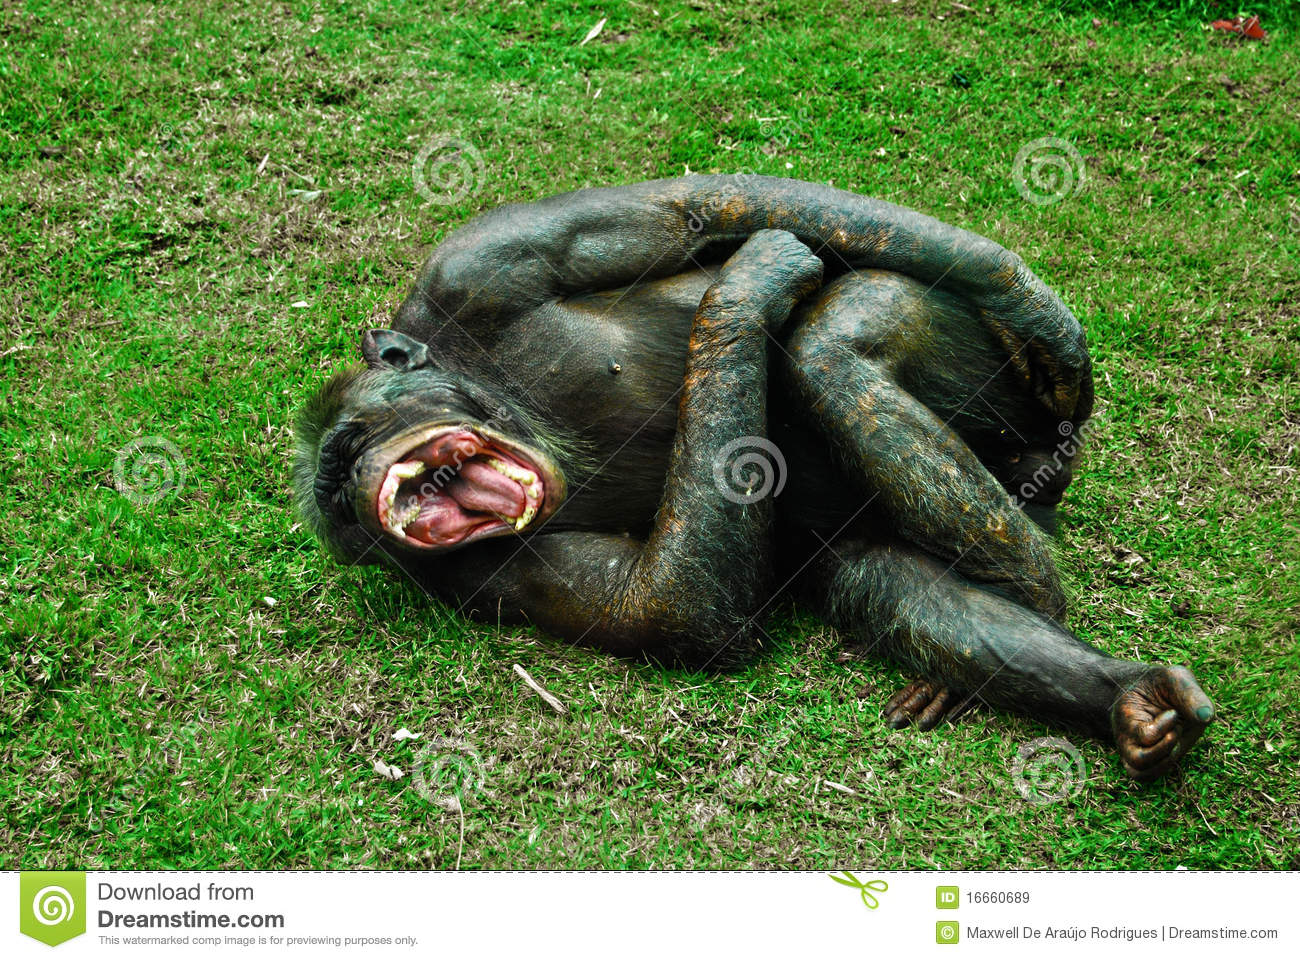 Laughing Monkey Royalty Free Stock Images - Image: 16660689